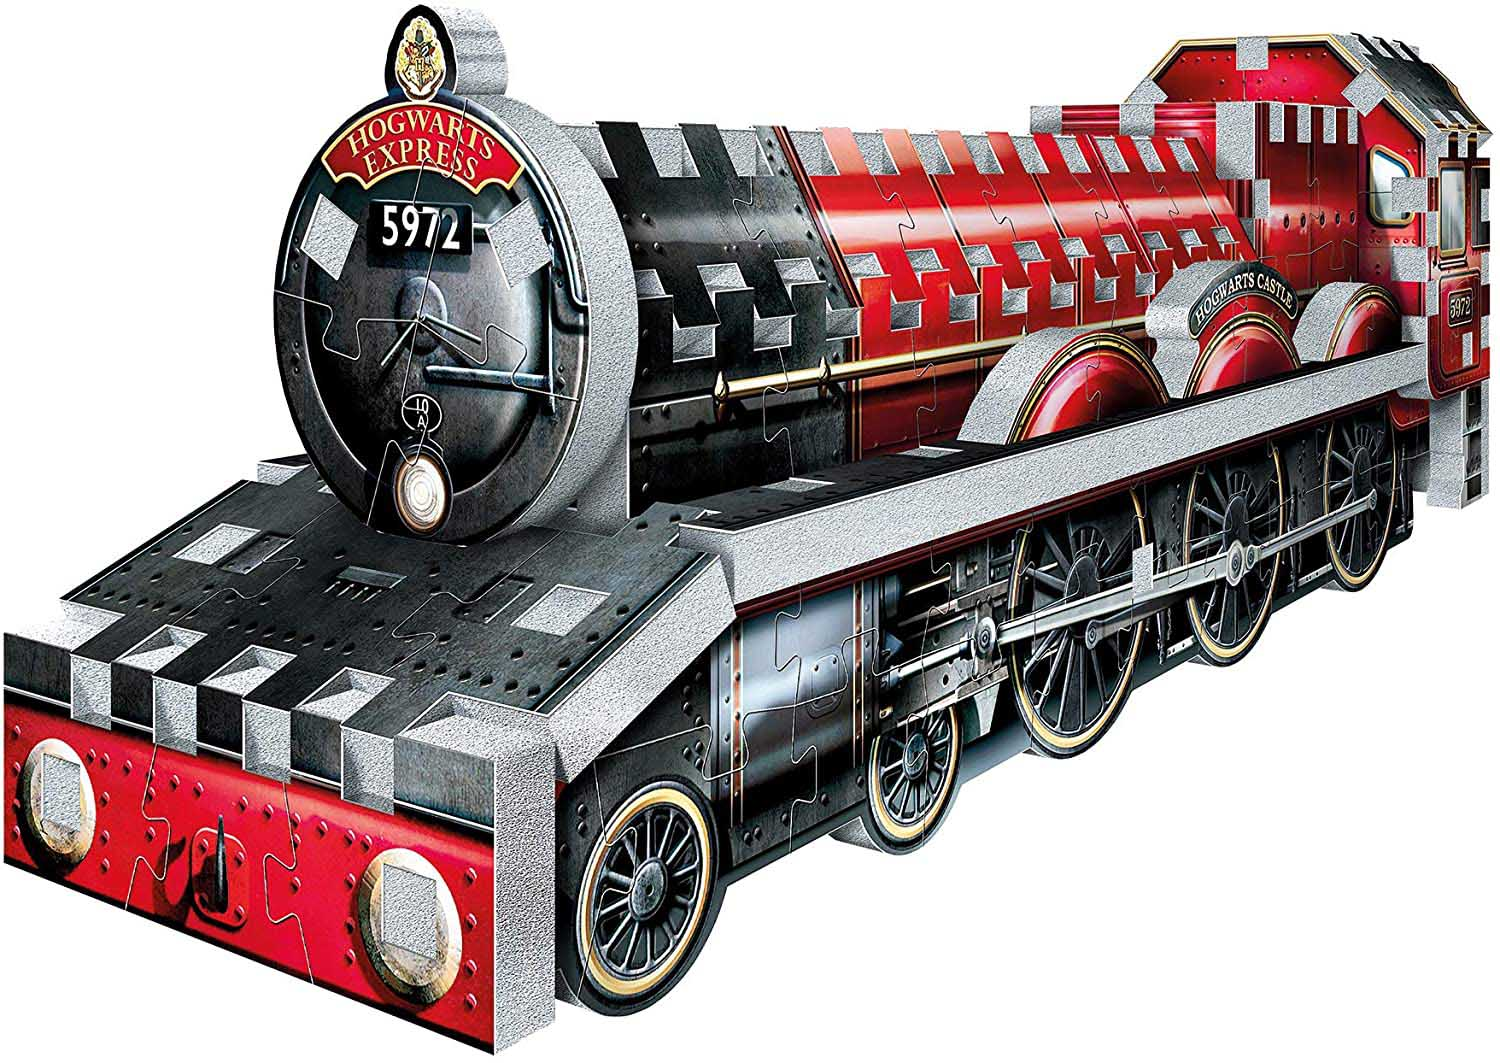 Hogwarts Express (Small) Trains Jigsaw Puzzle